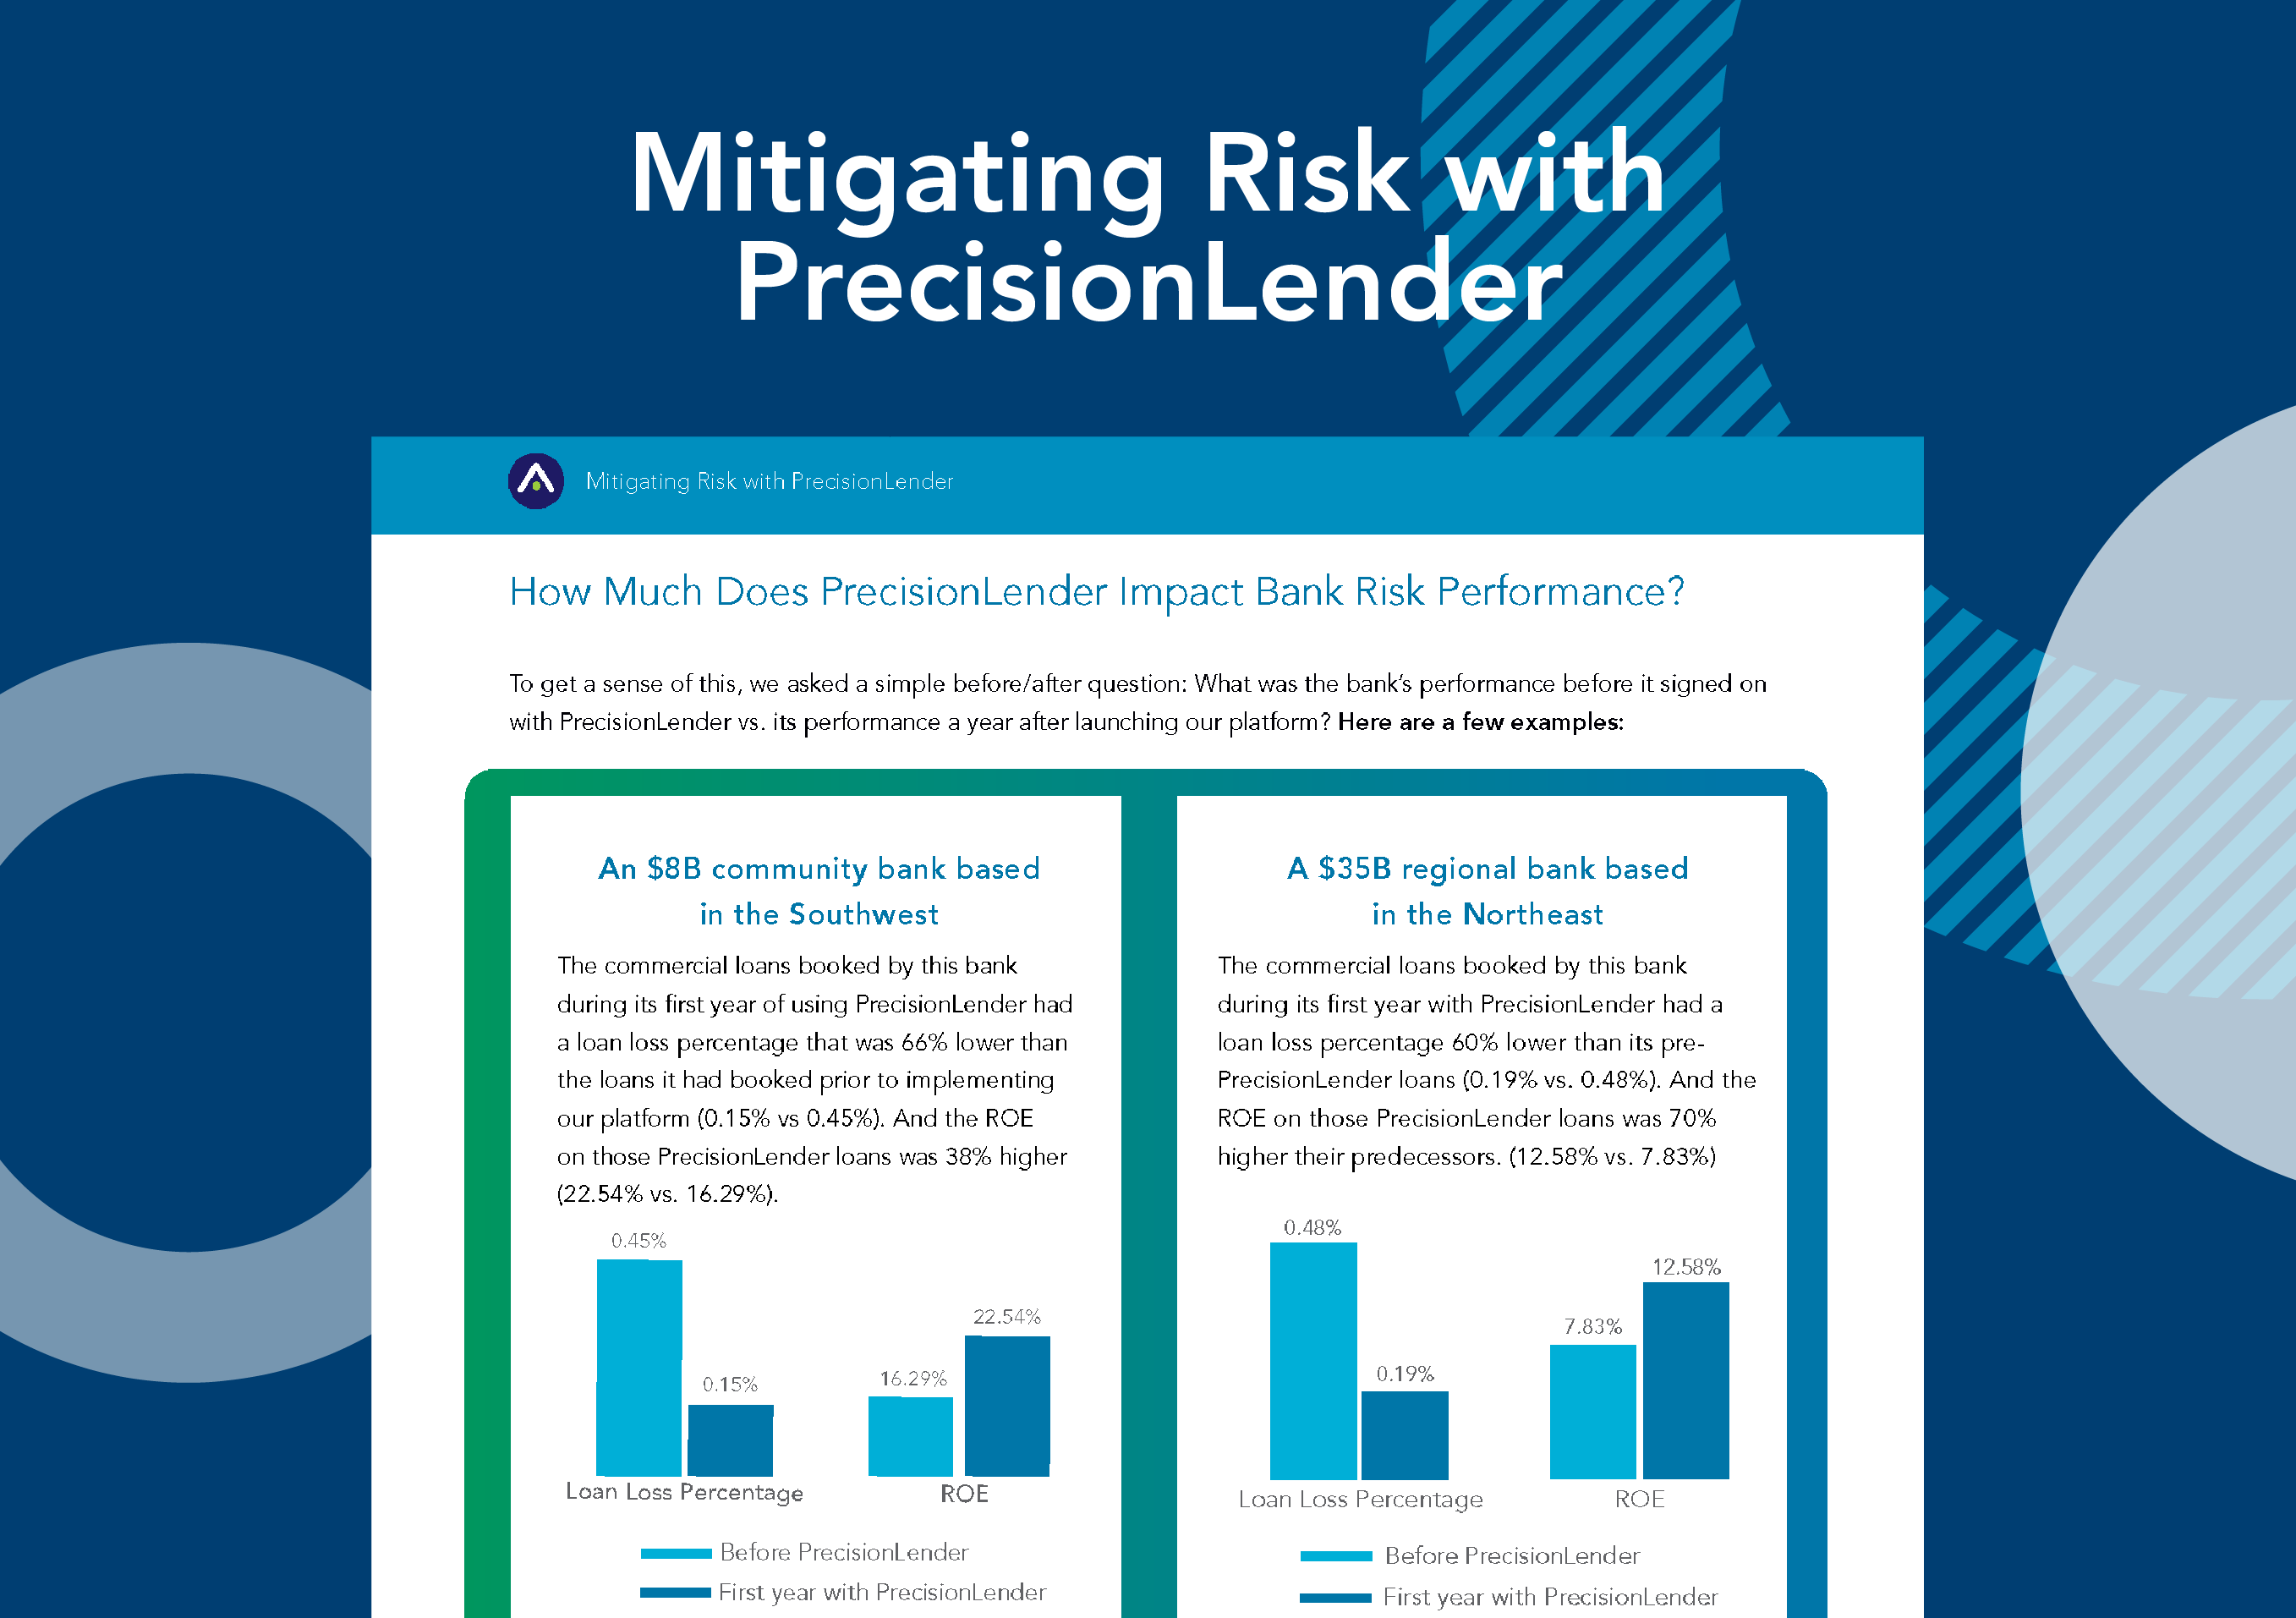 Mitigating Risk With PrecisionLender